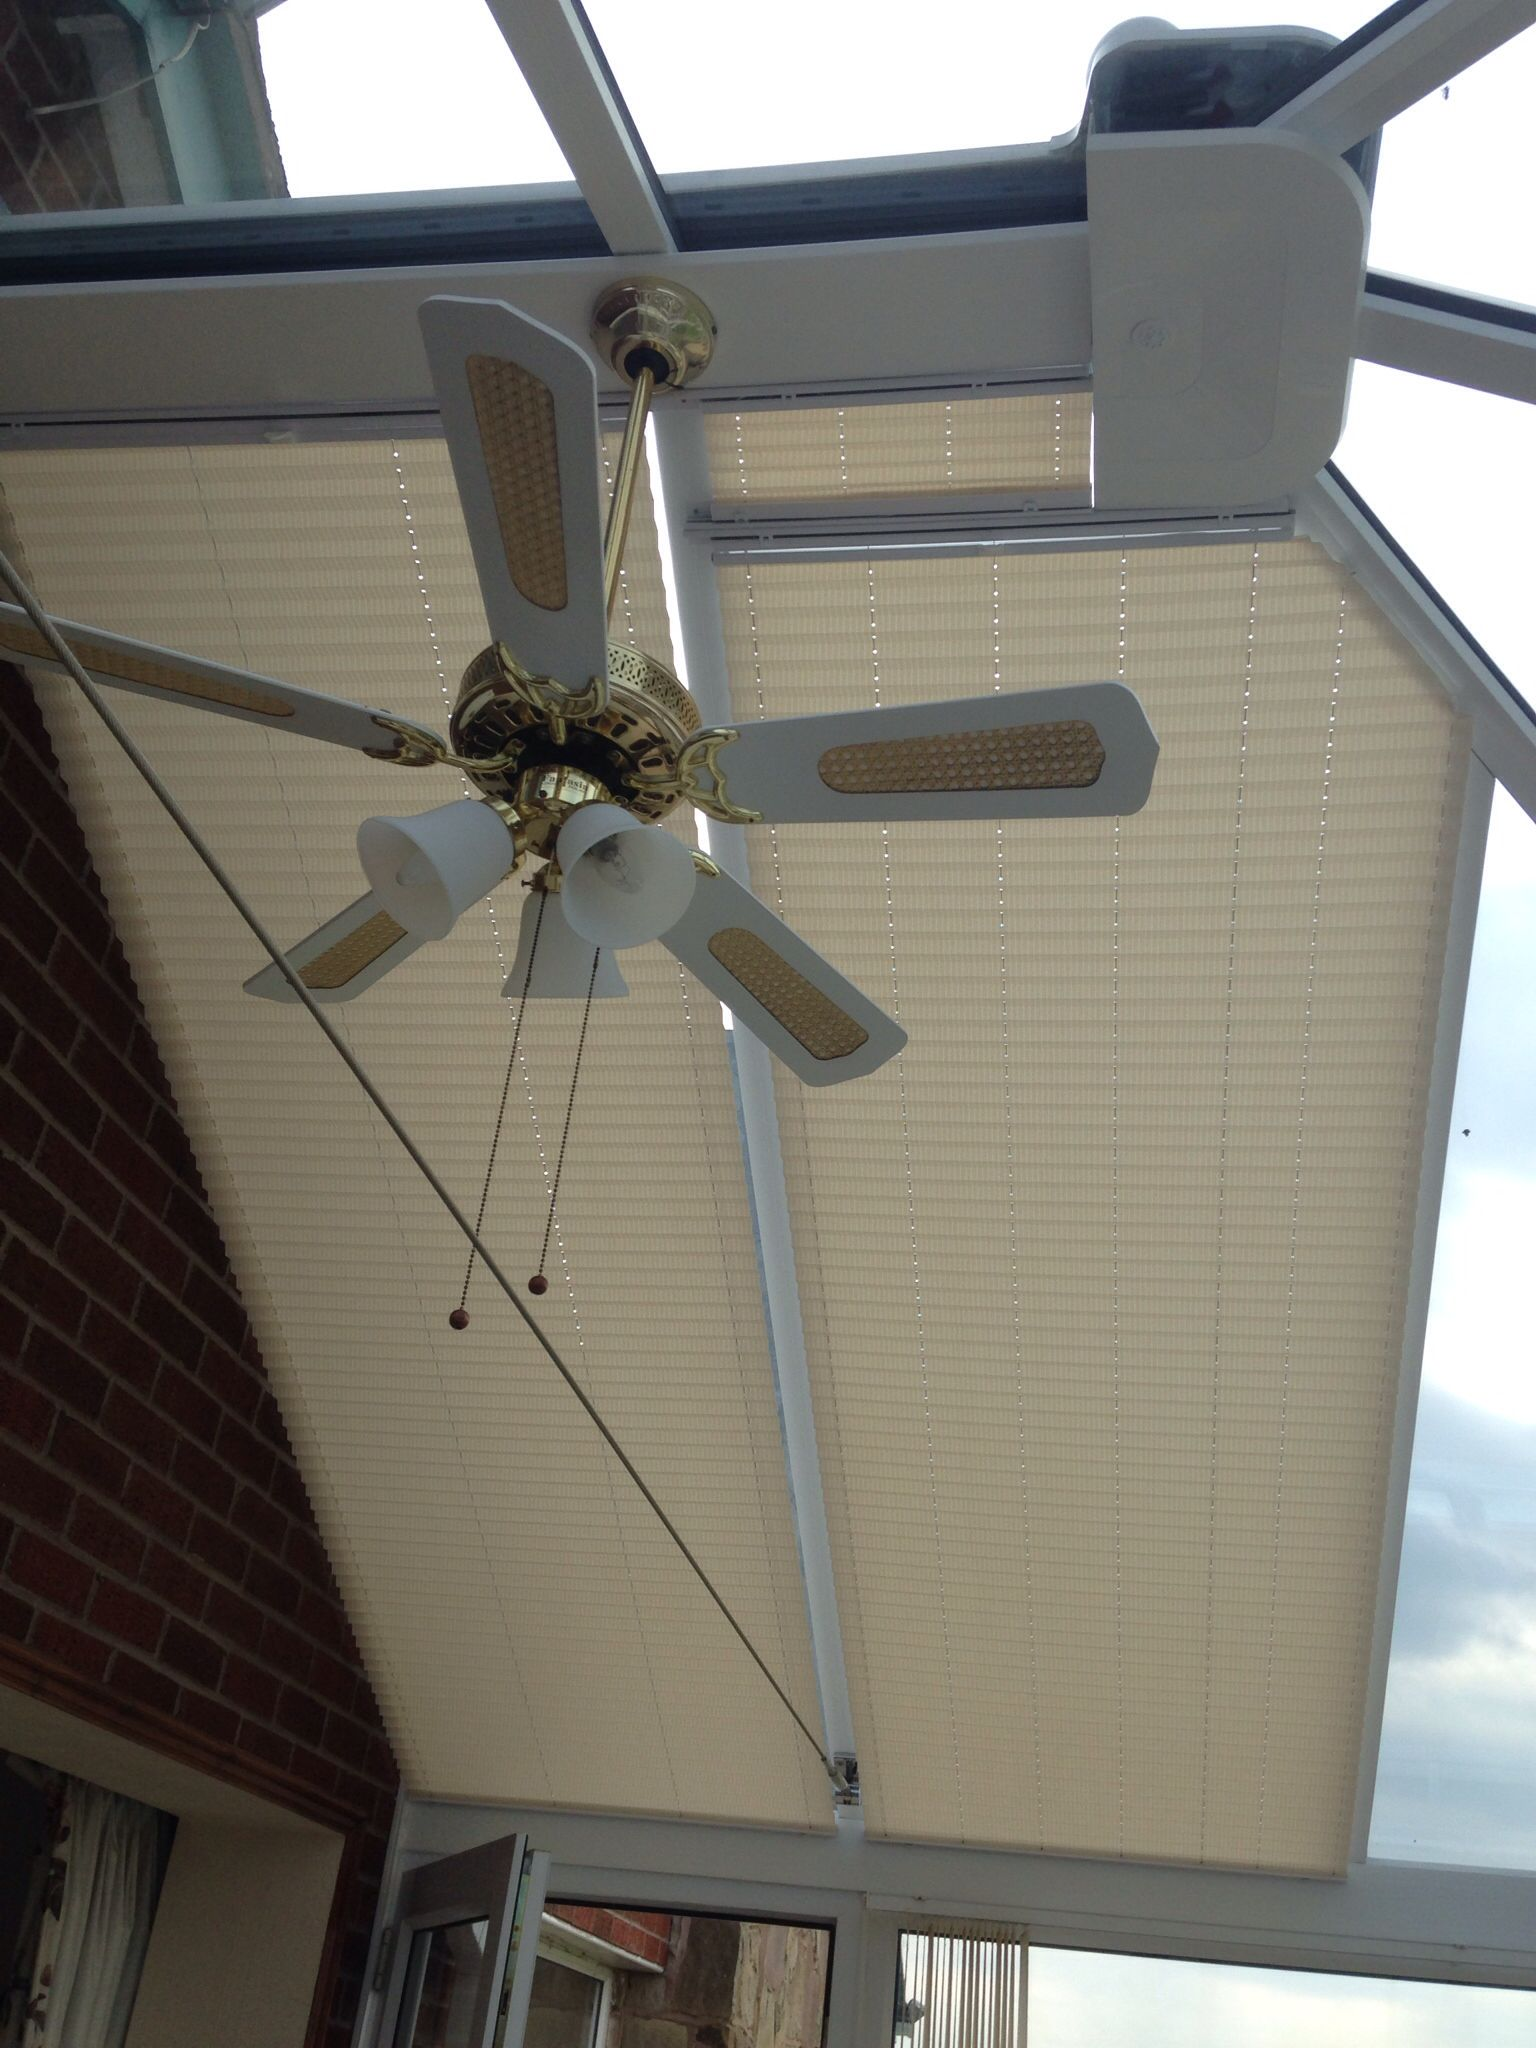 Pin By Mao Mao On Recent Work Conservatory Roof Blinds Conservatory Roof Electric Blinds